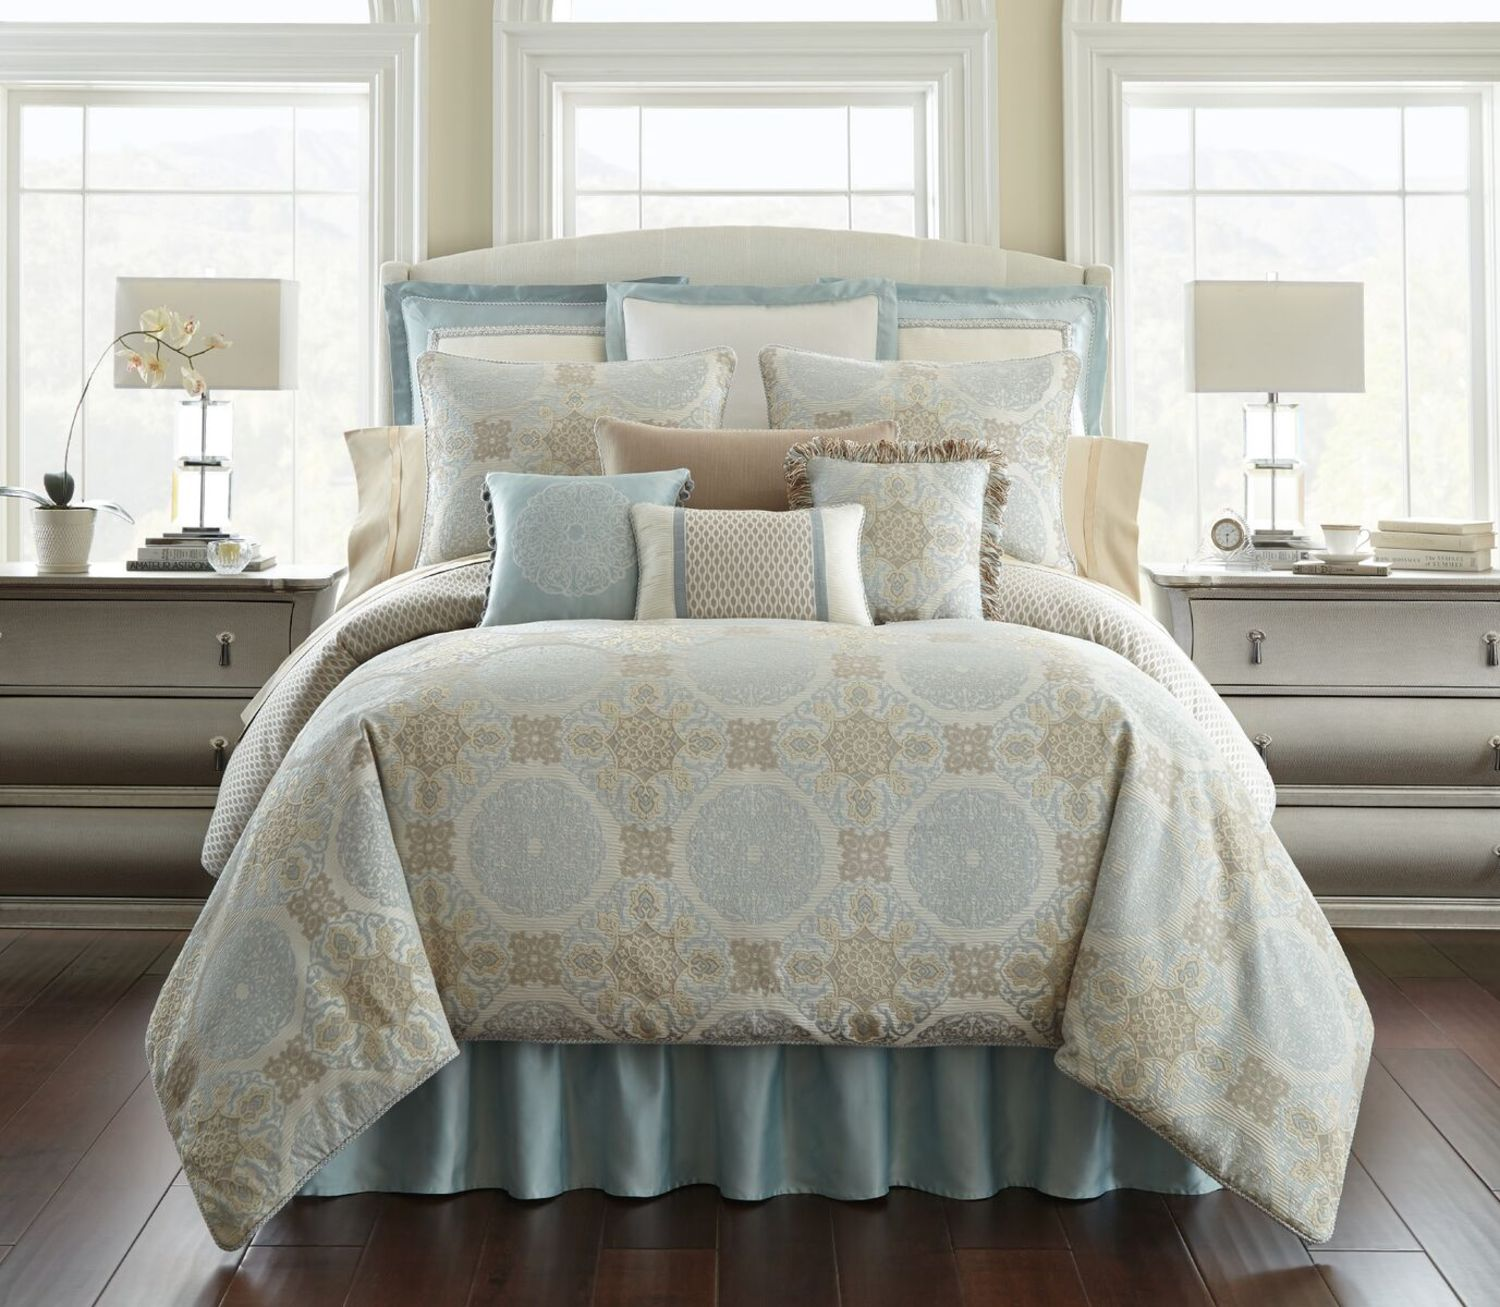 Jonet by Waterford Luxury Bedding  BeddingSuperStorecom